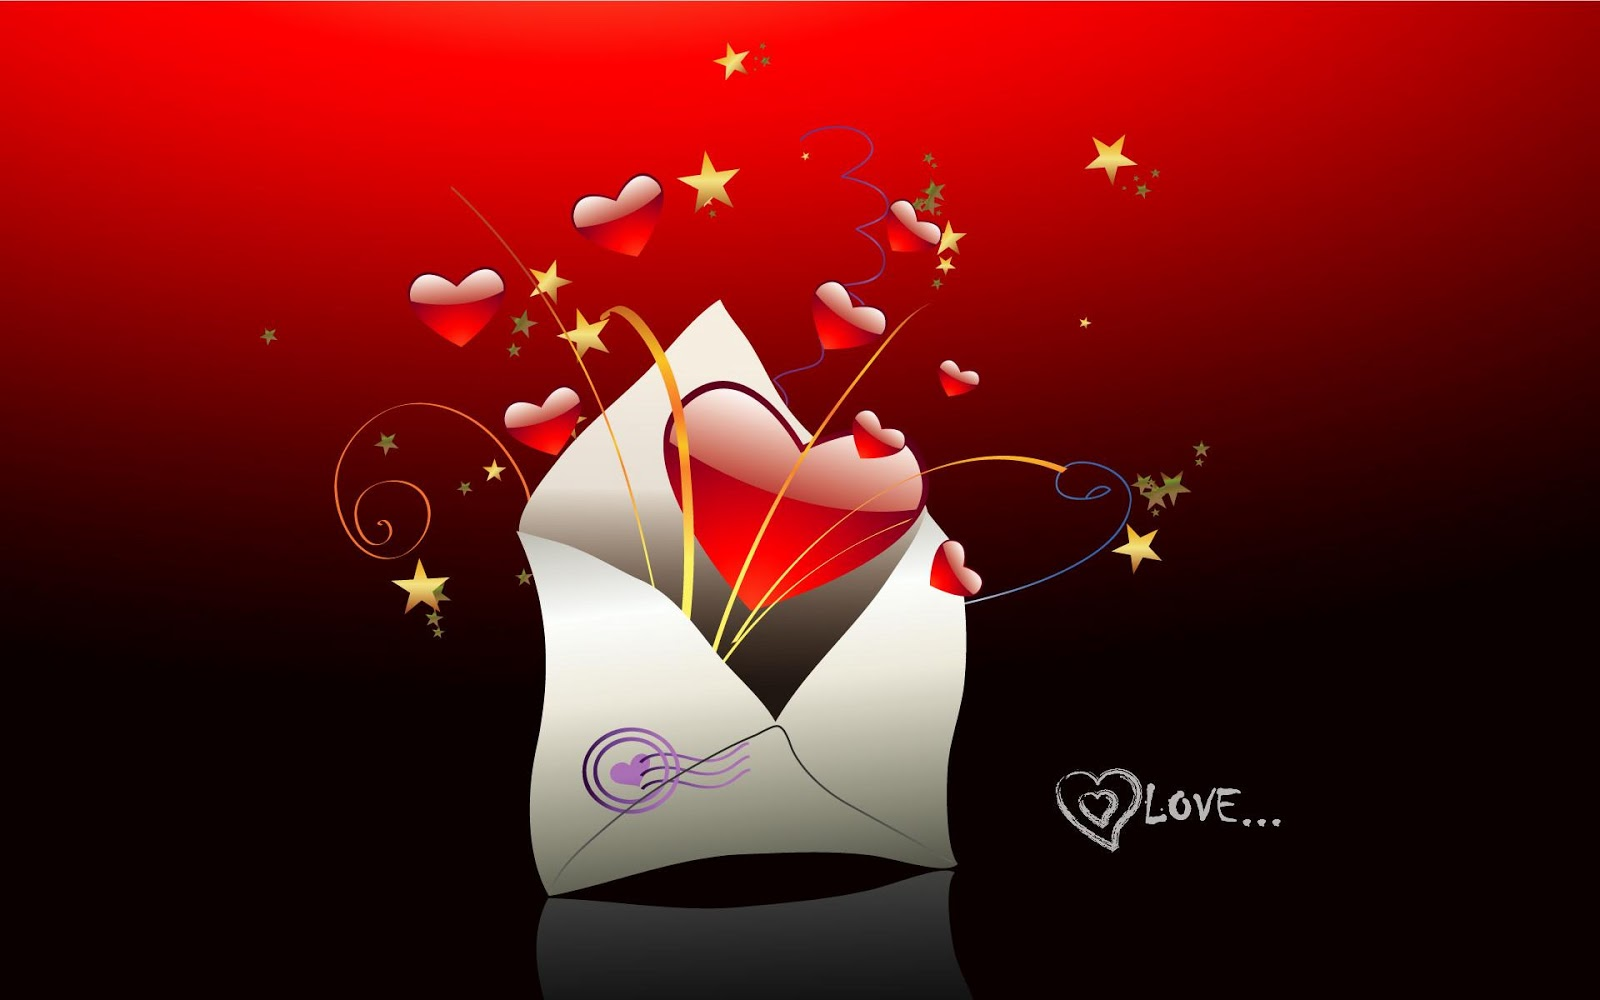 3D Love Wallpapers For Desktop Group  83   Free 3D Wallpapers Download  I love you wallpaper  i love you